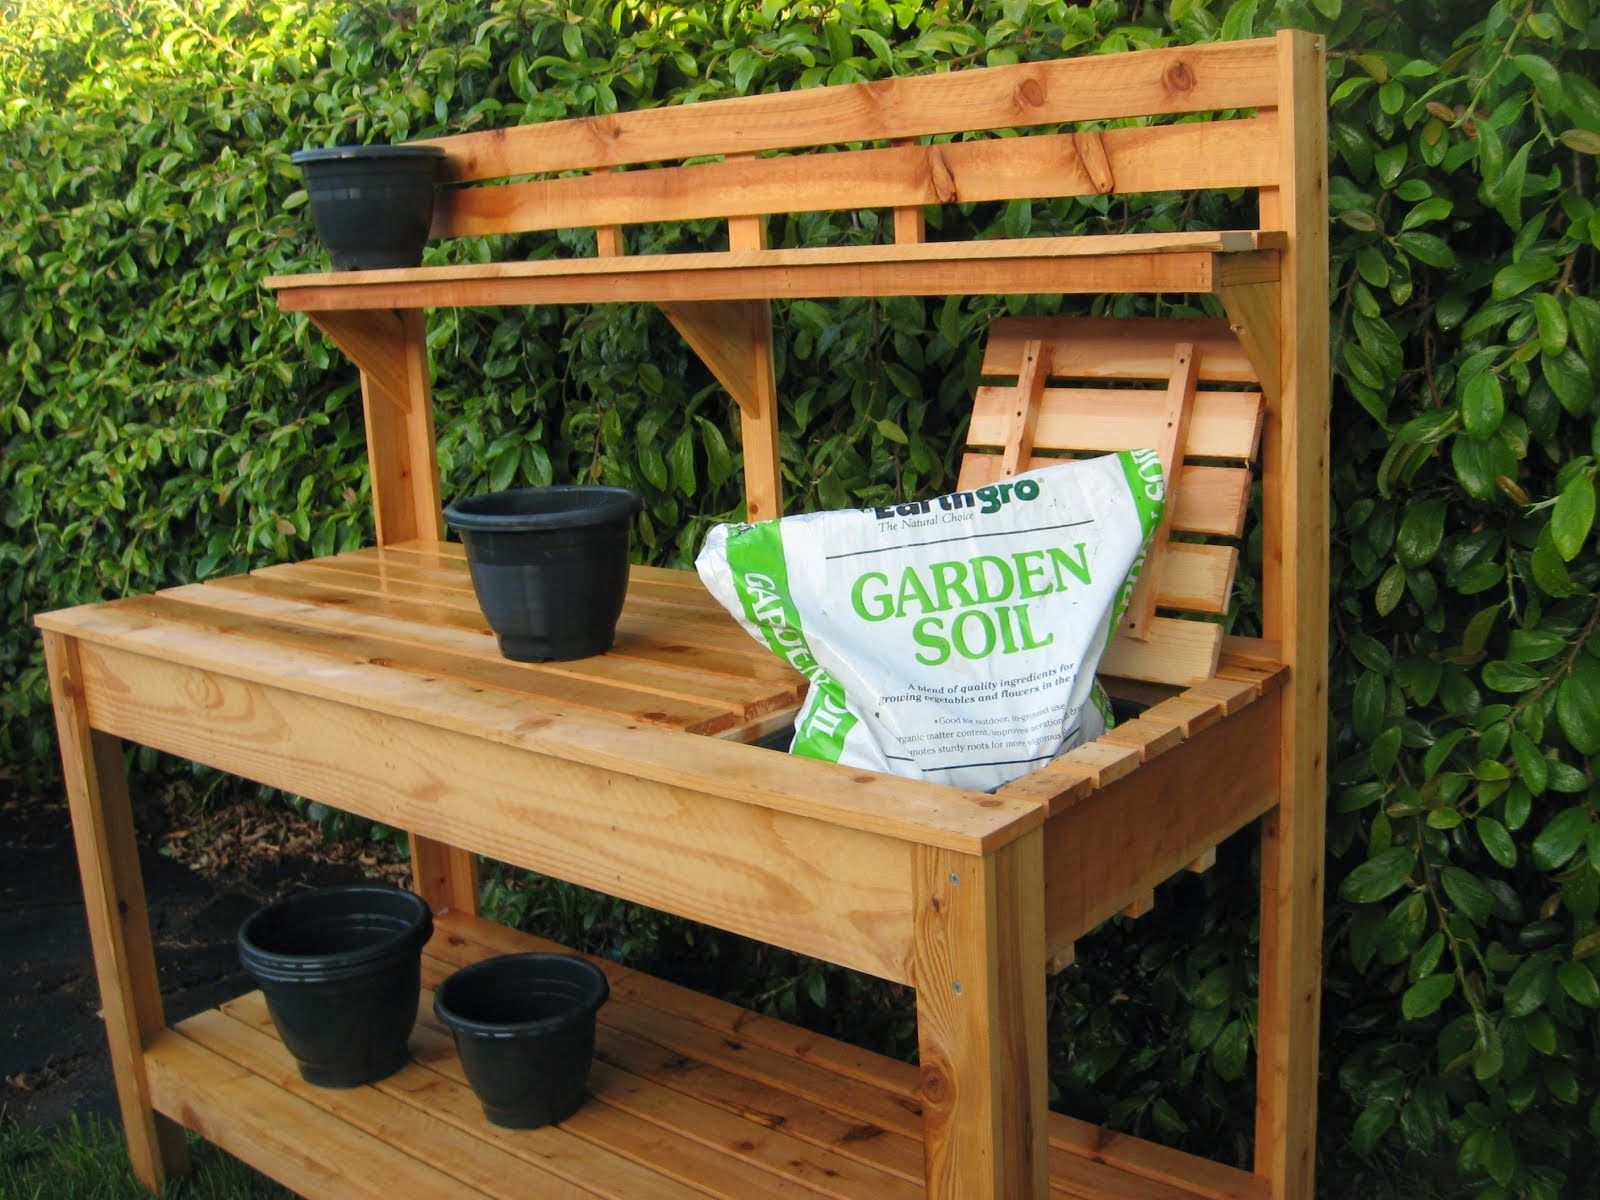 Outdoor potting bench lowes designs bench pinterest gardens news sites and lowes Outdoor potting bench